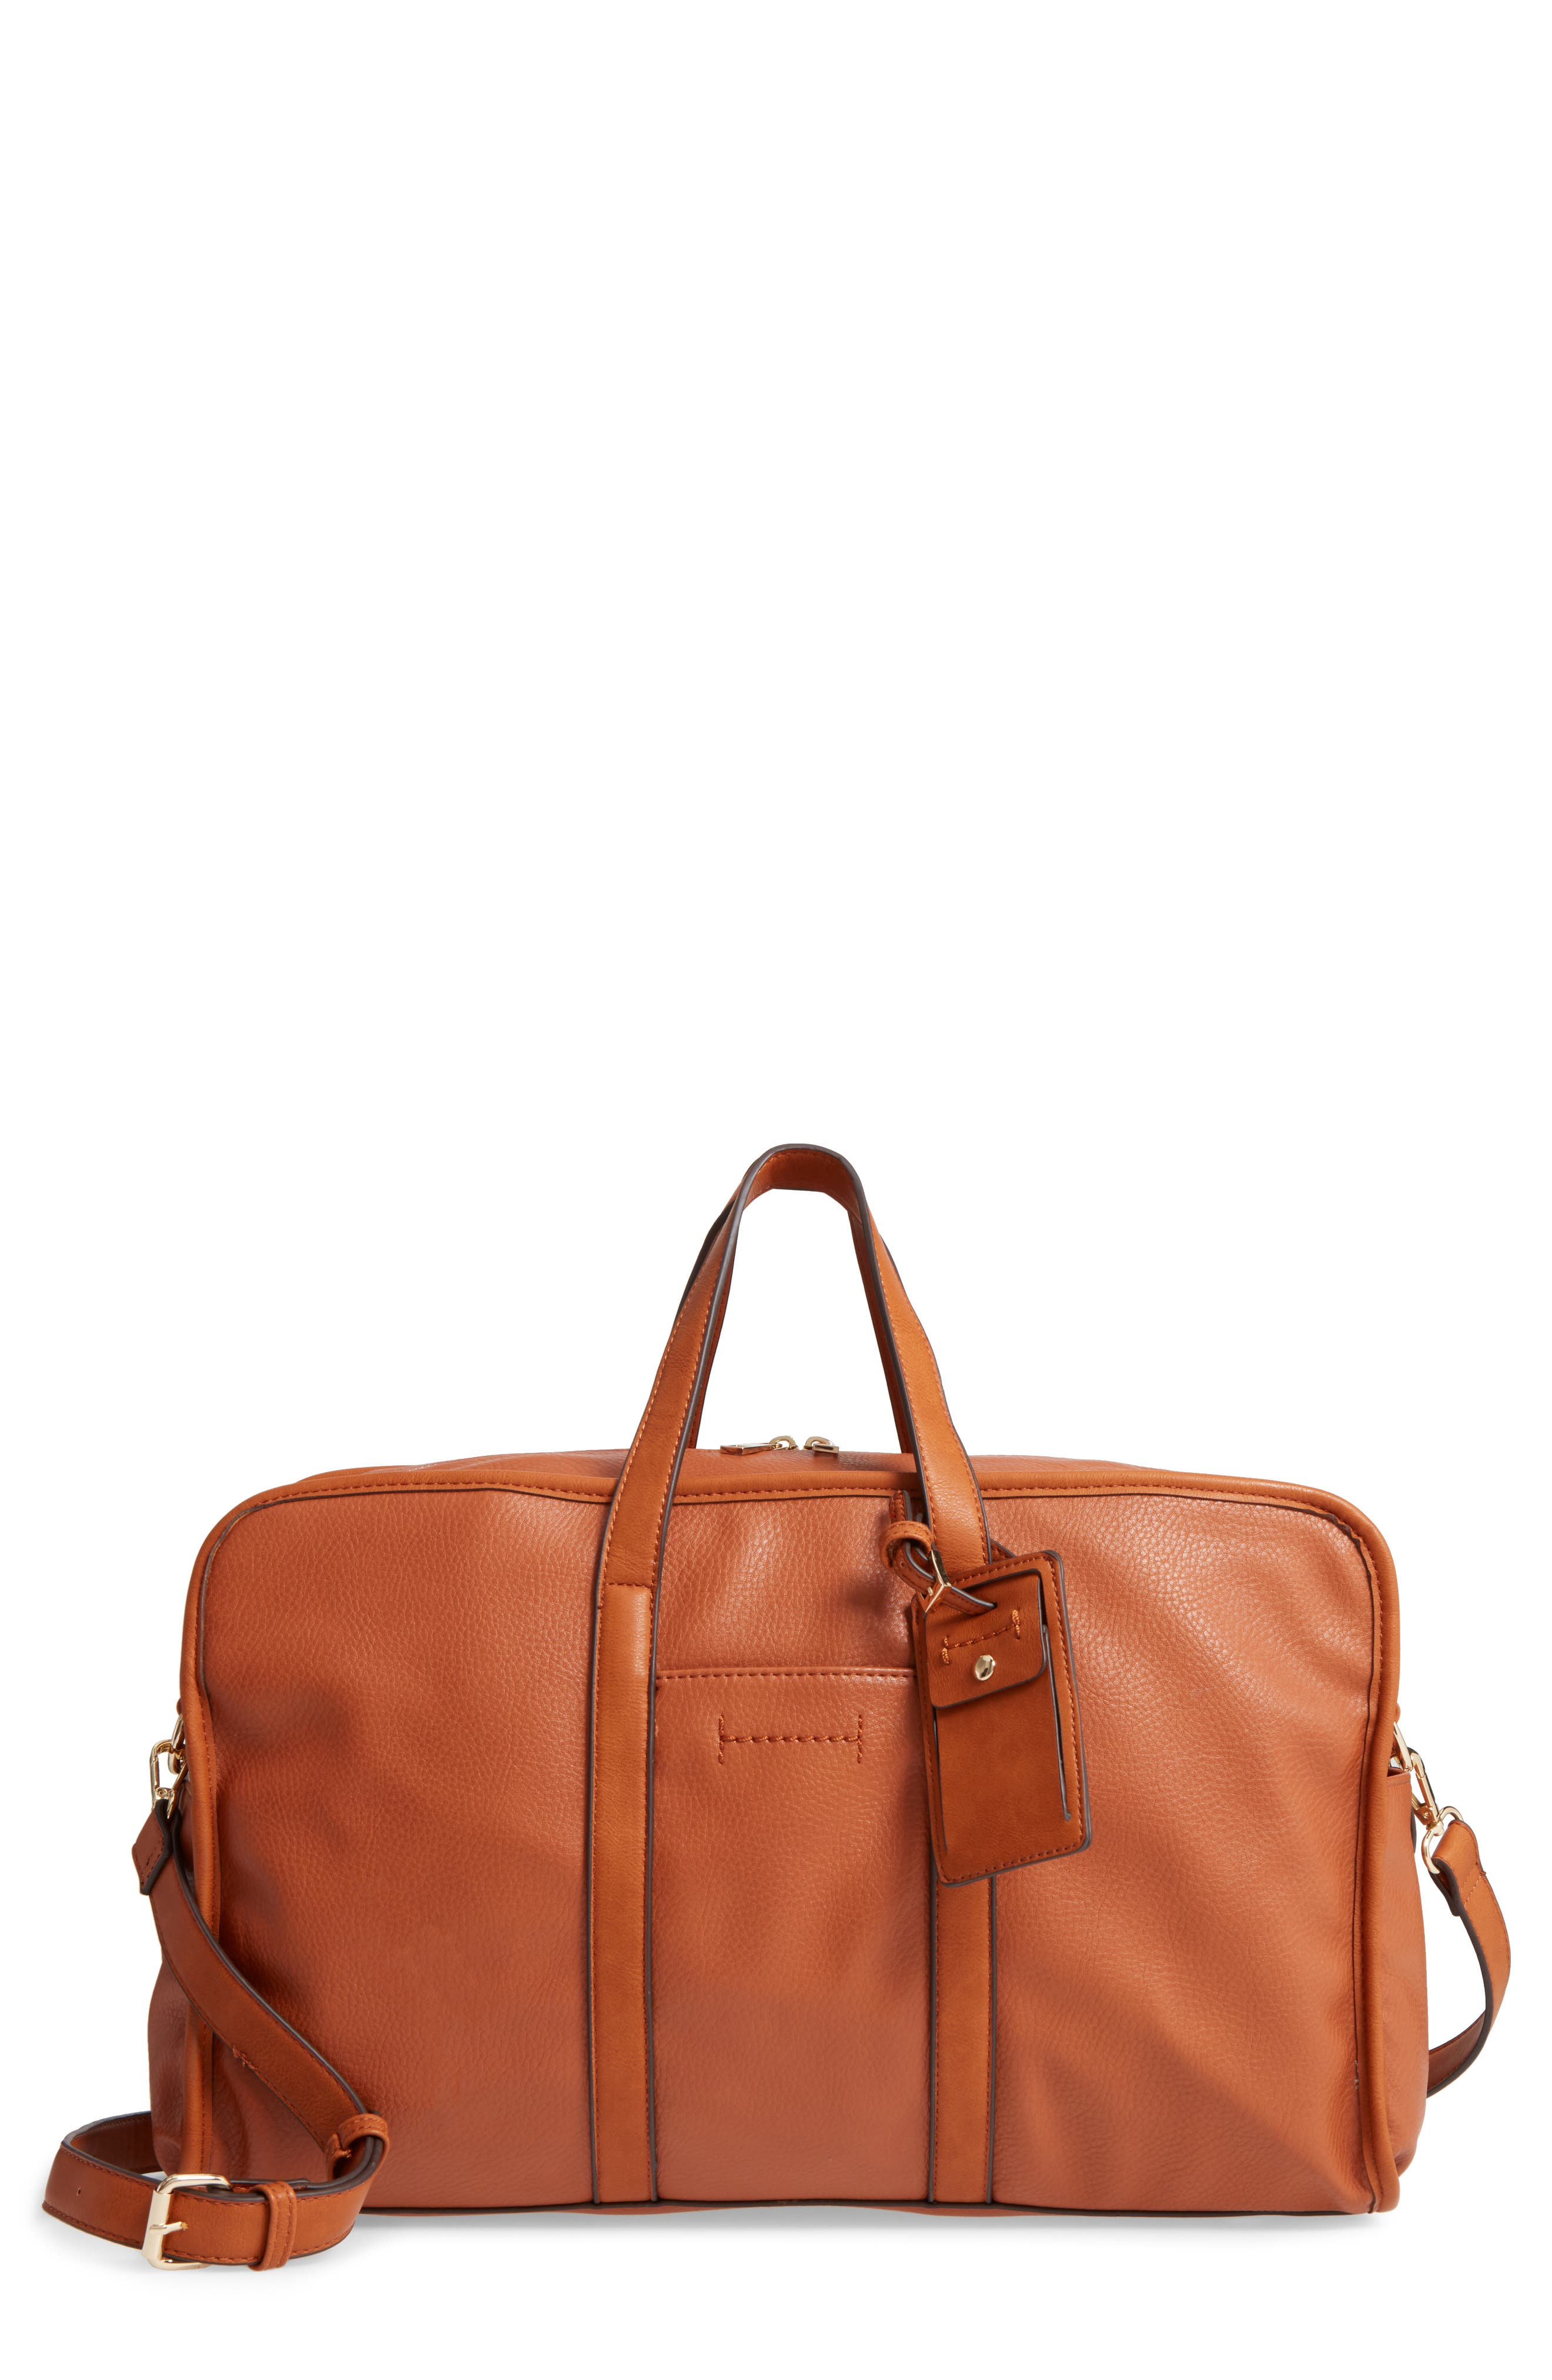 Alternate Image 1 Selected - Sole Society Doxin Faux Leather Duffel Bag